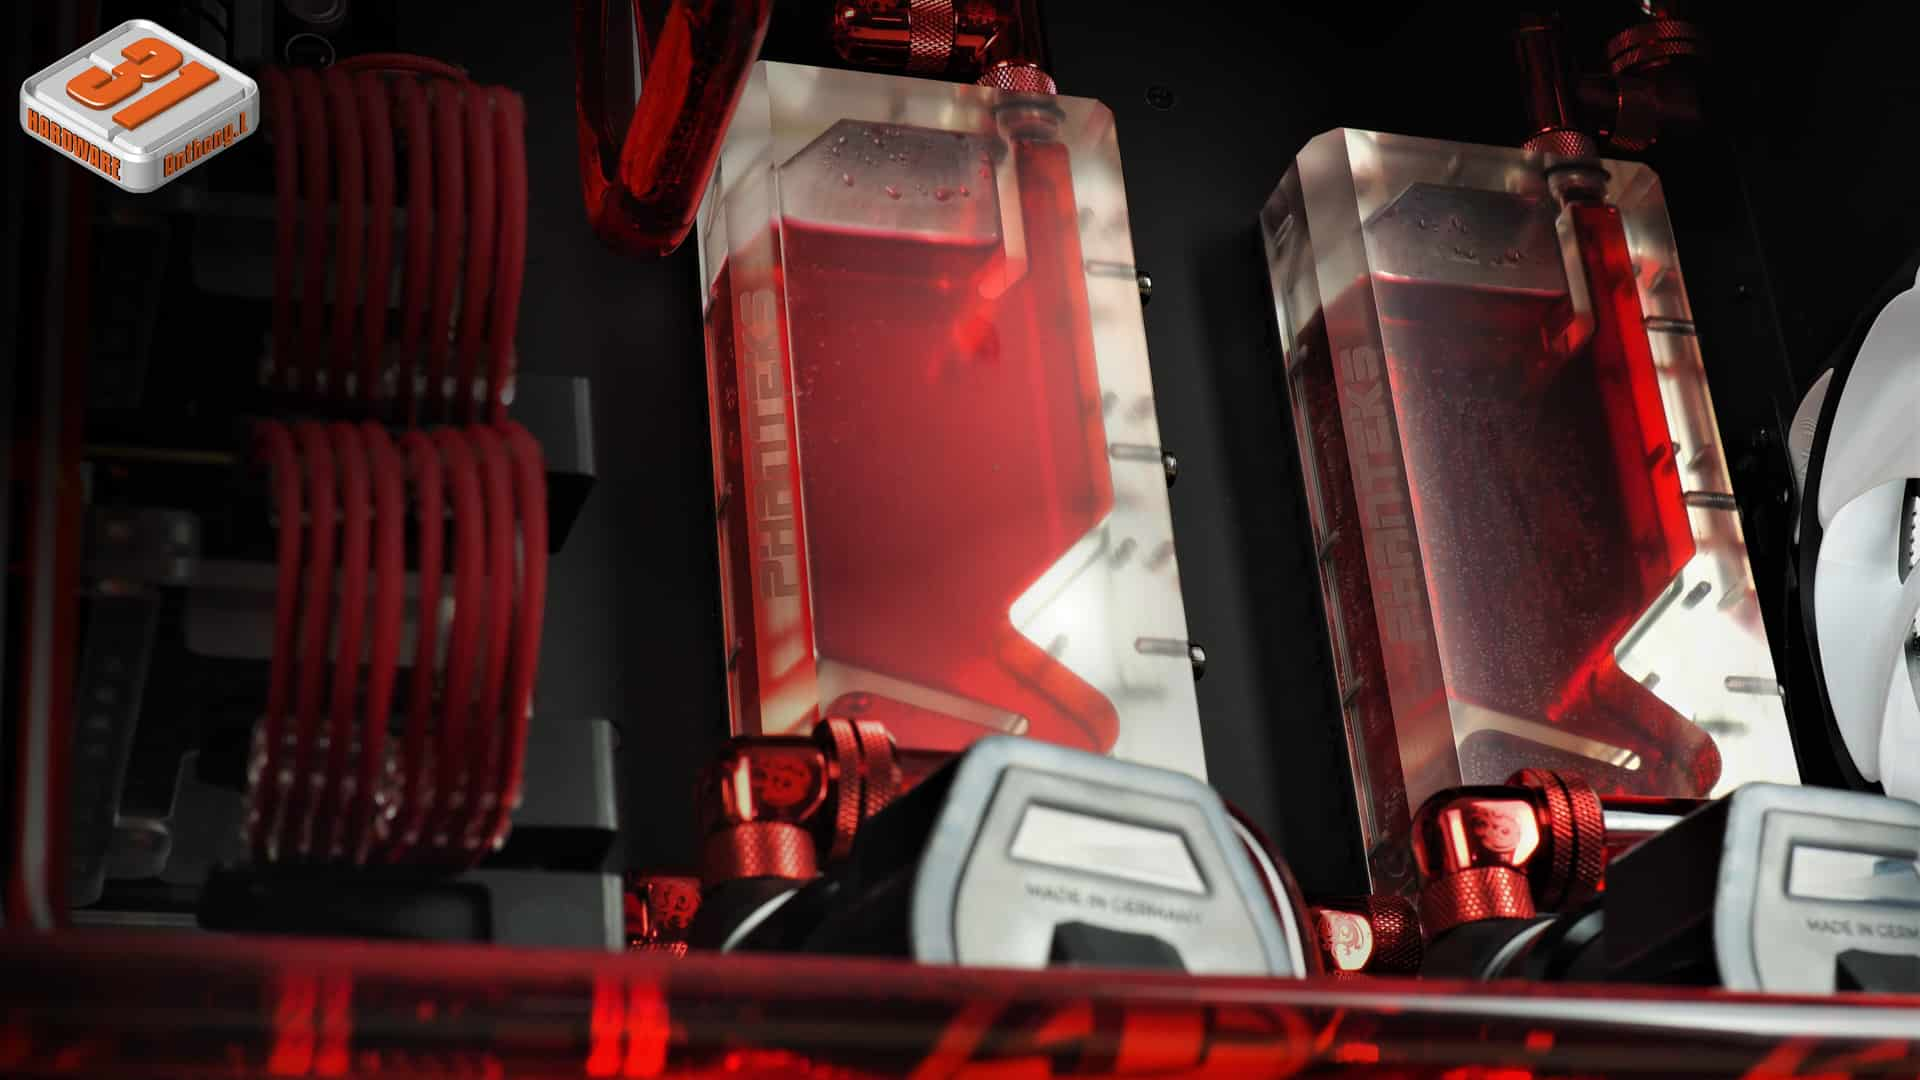 Worblog du projet Blood and ROG par Hardware31